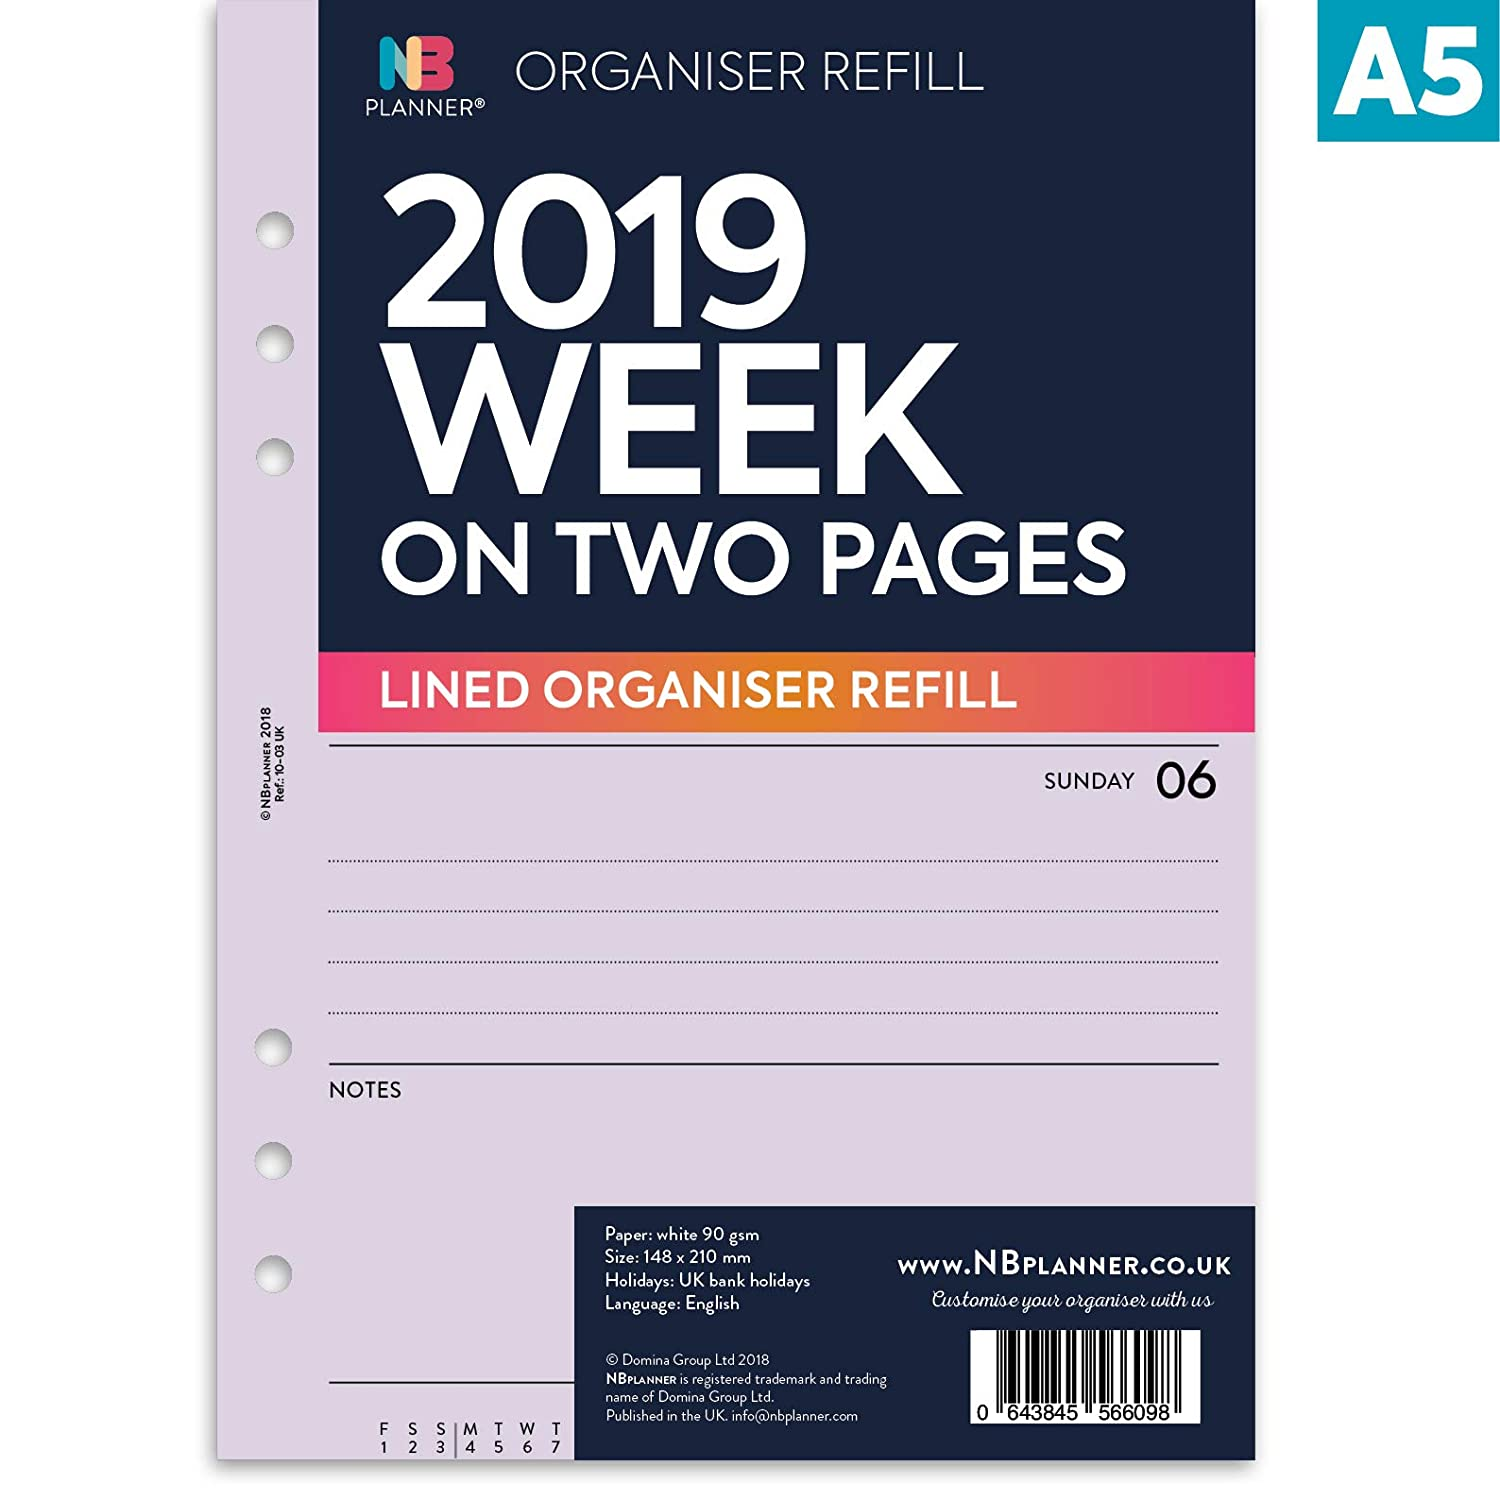 NBplanner® 2019 Week on Two Pages A5 Lined Planner Organiser Refill English Diary 6-Ring A5 Binder Compatible Insert (Apricot) Domina Group Ltd